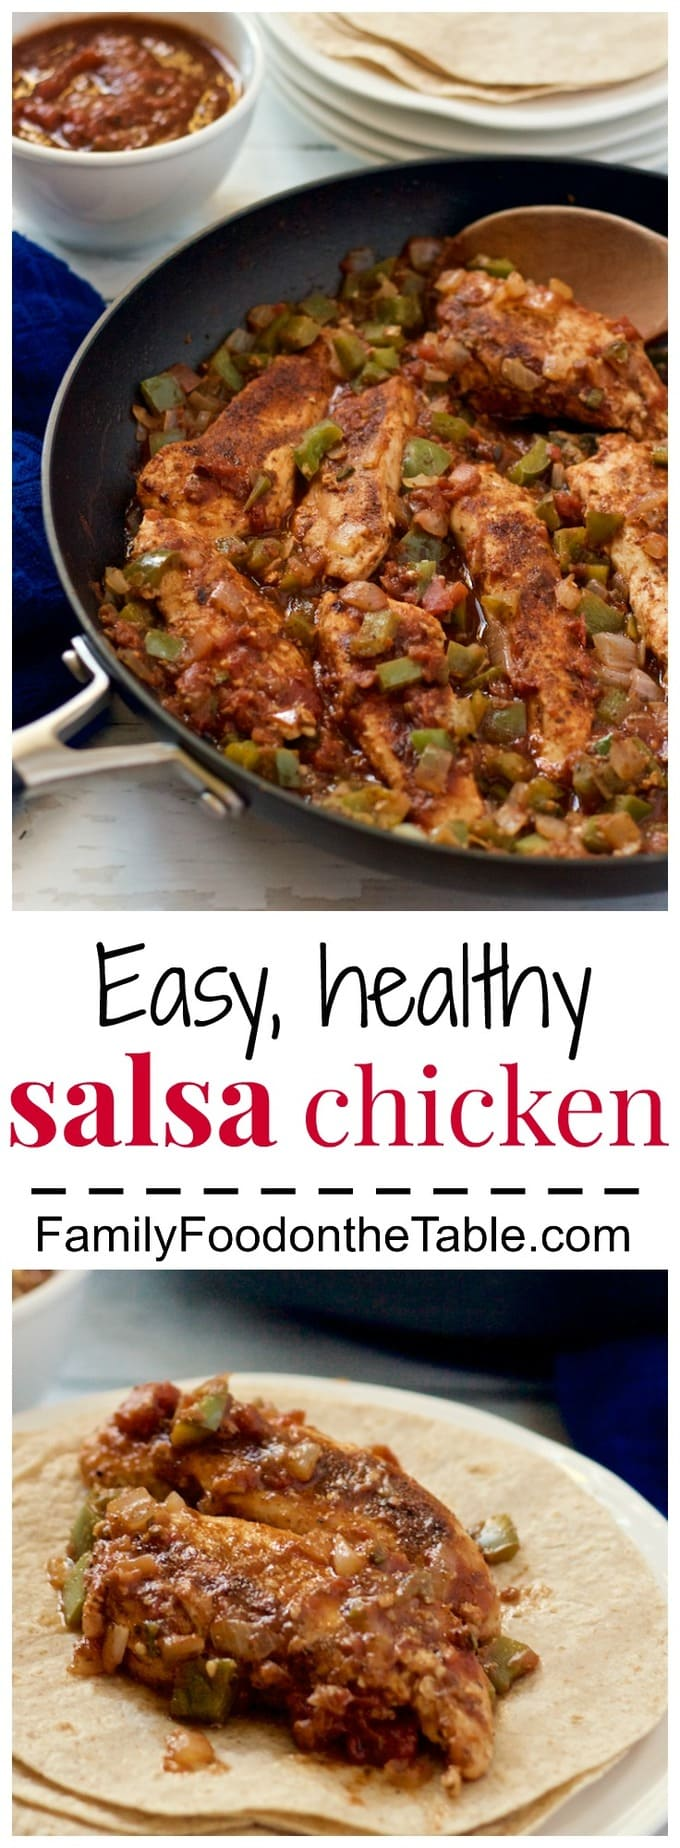 Easy, fast salsa chicken with onion, peppers and jalapeños is perfect for wraps or over rice. A great weeknight dinner! | FamilyFoodontheTable.com